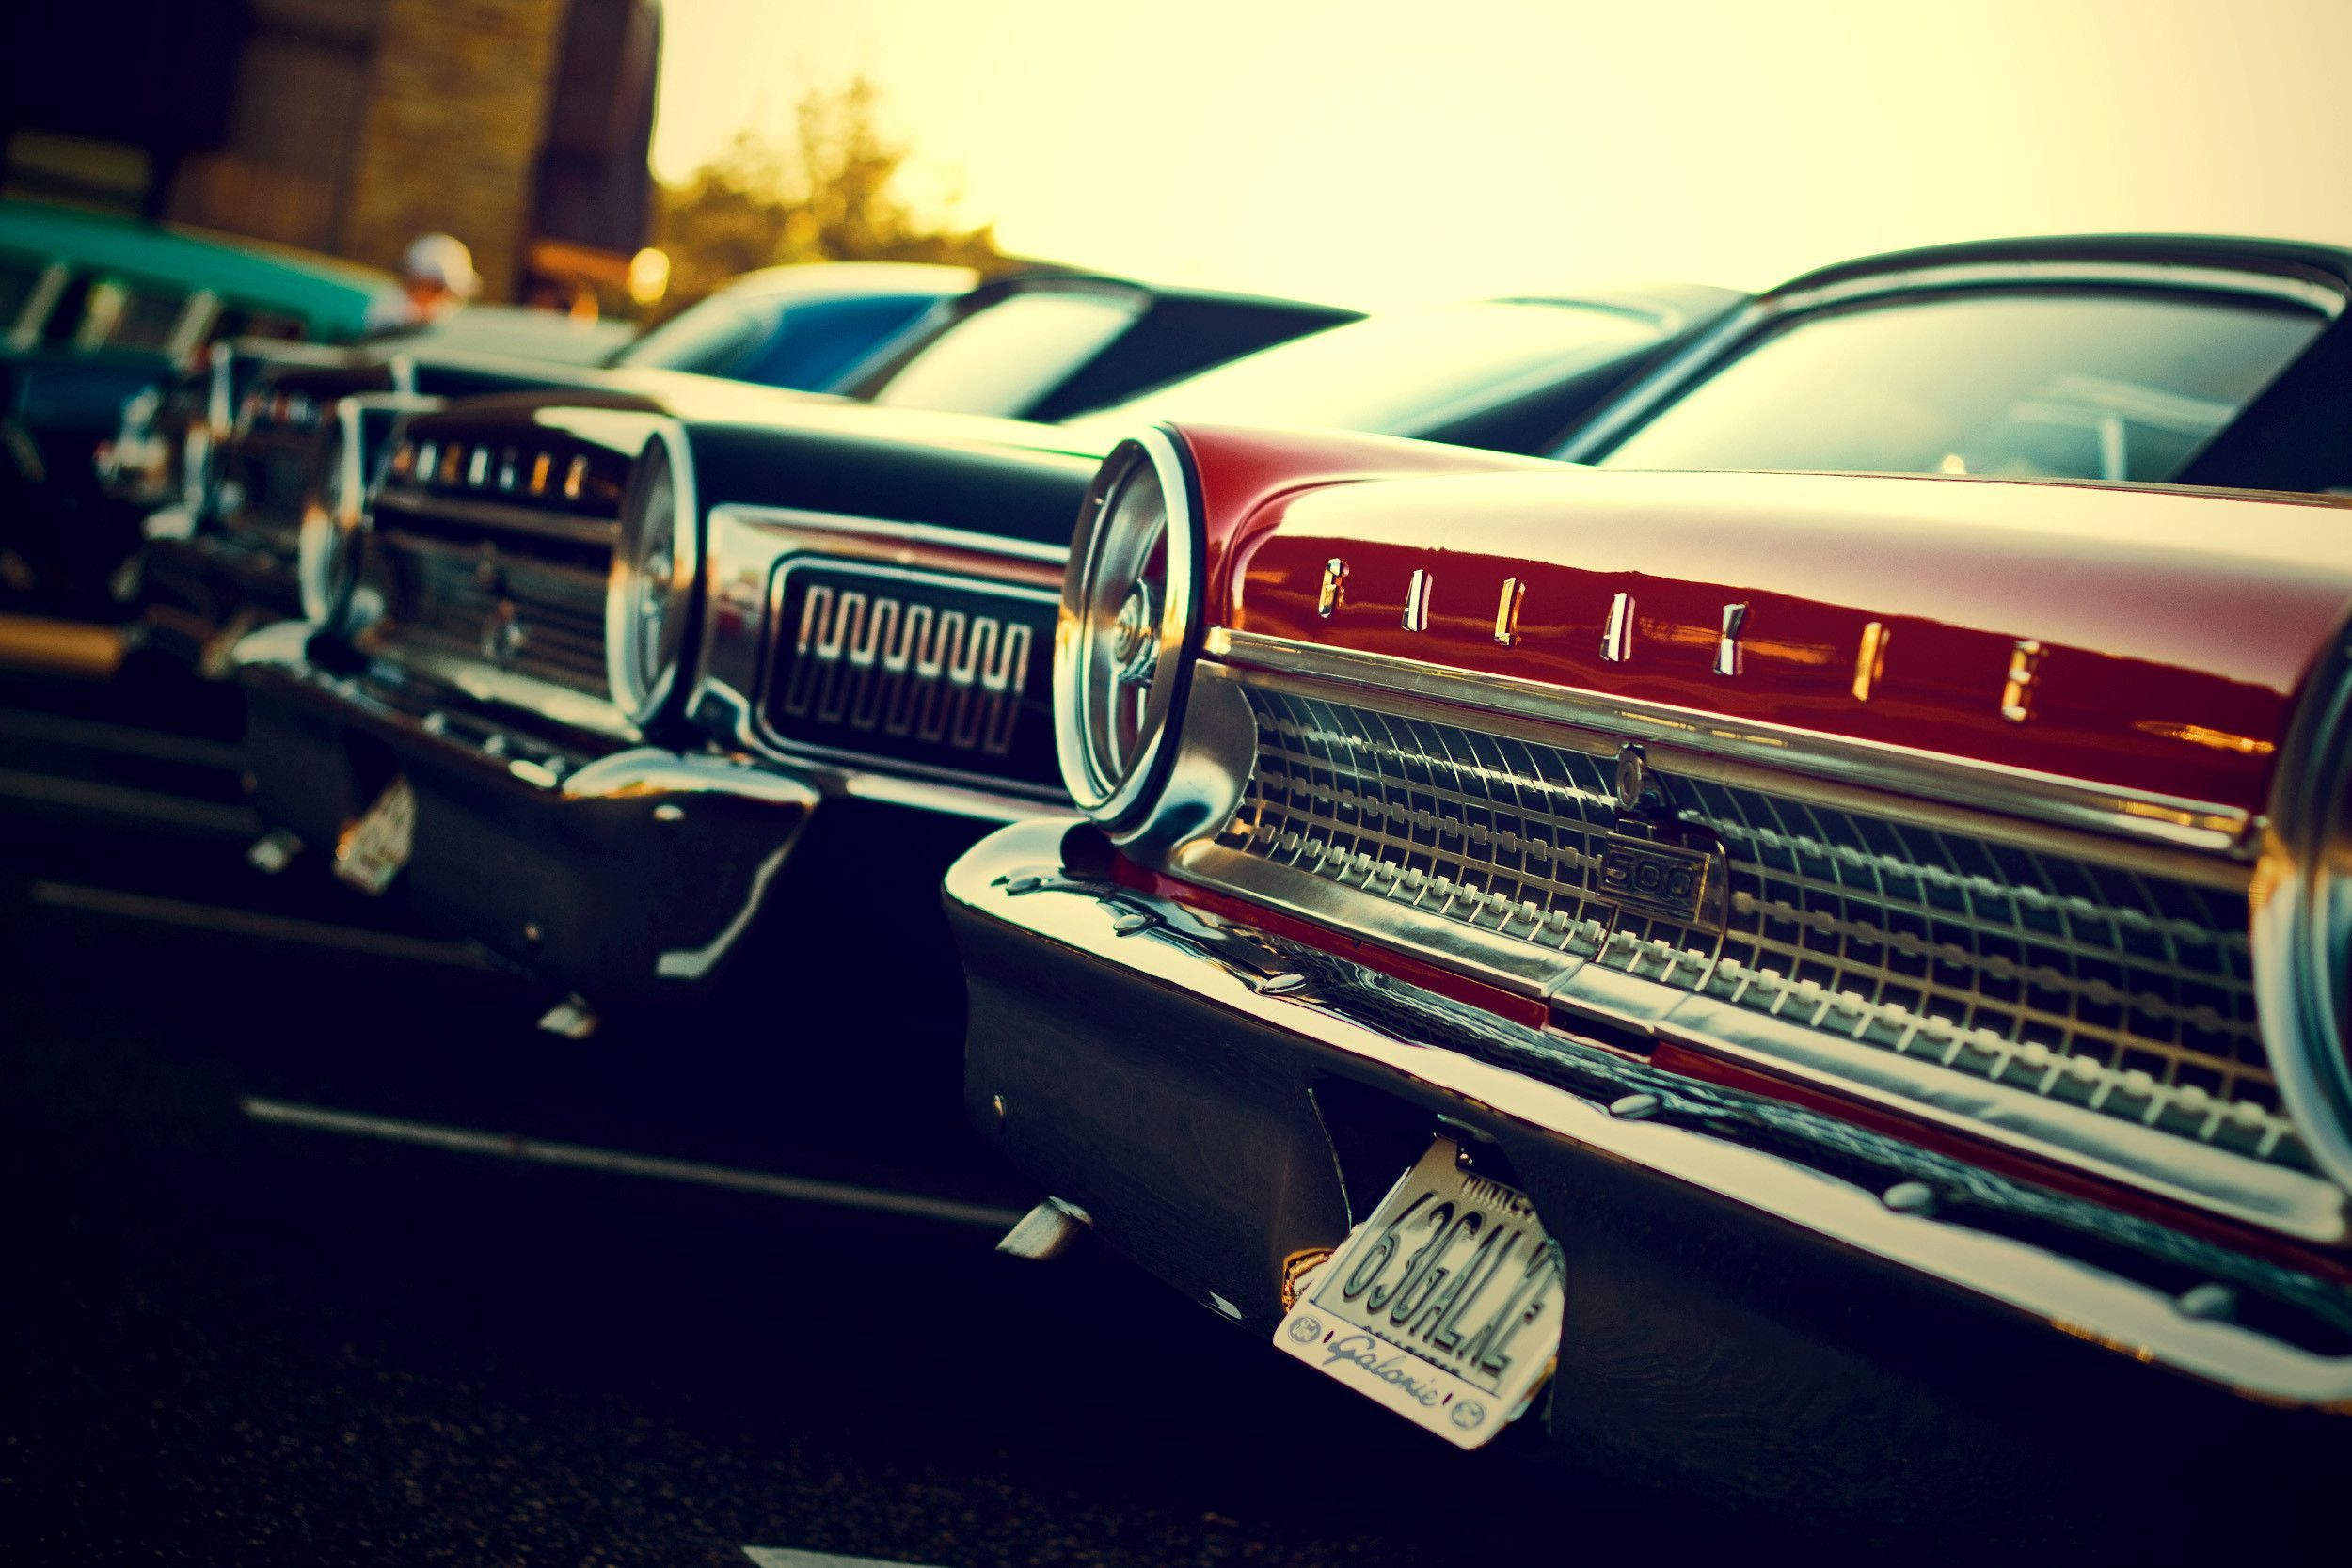 Wallpapers auto, cars, ford, classic car, classic, cars wallpapers ...